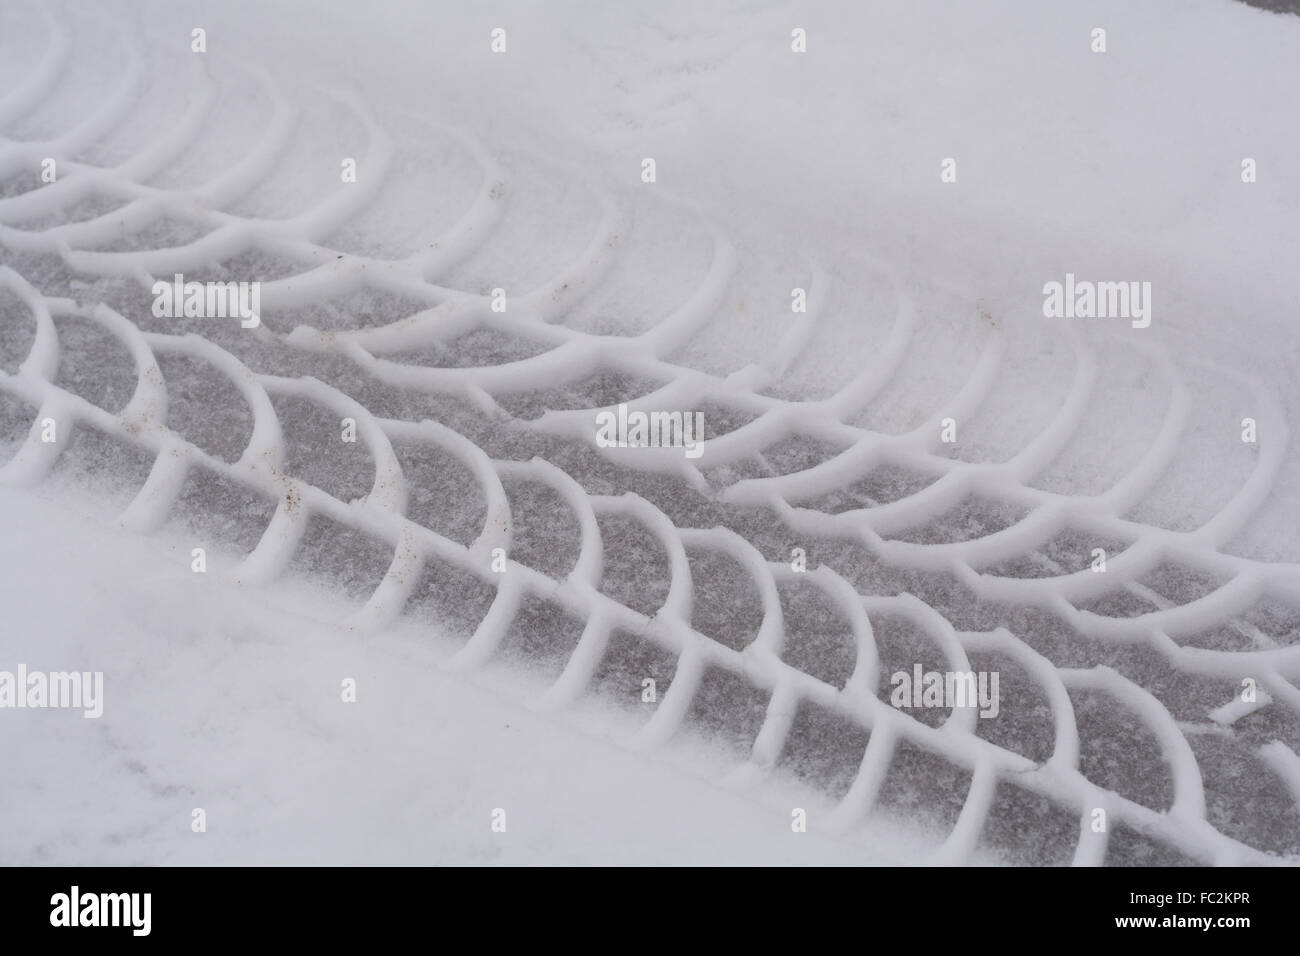 Tread in the snow - close-up - Stock Image